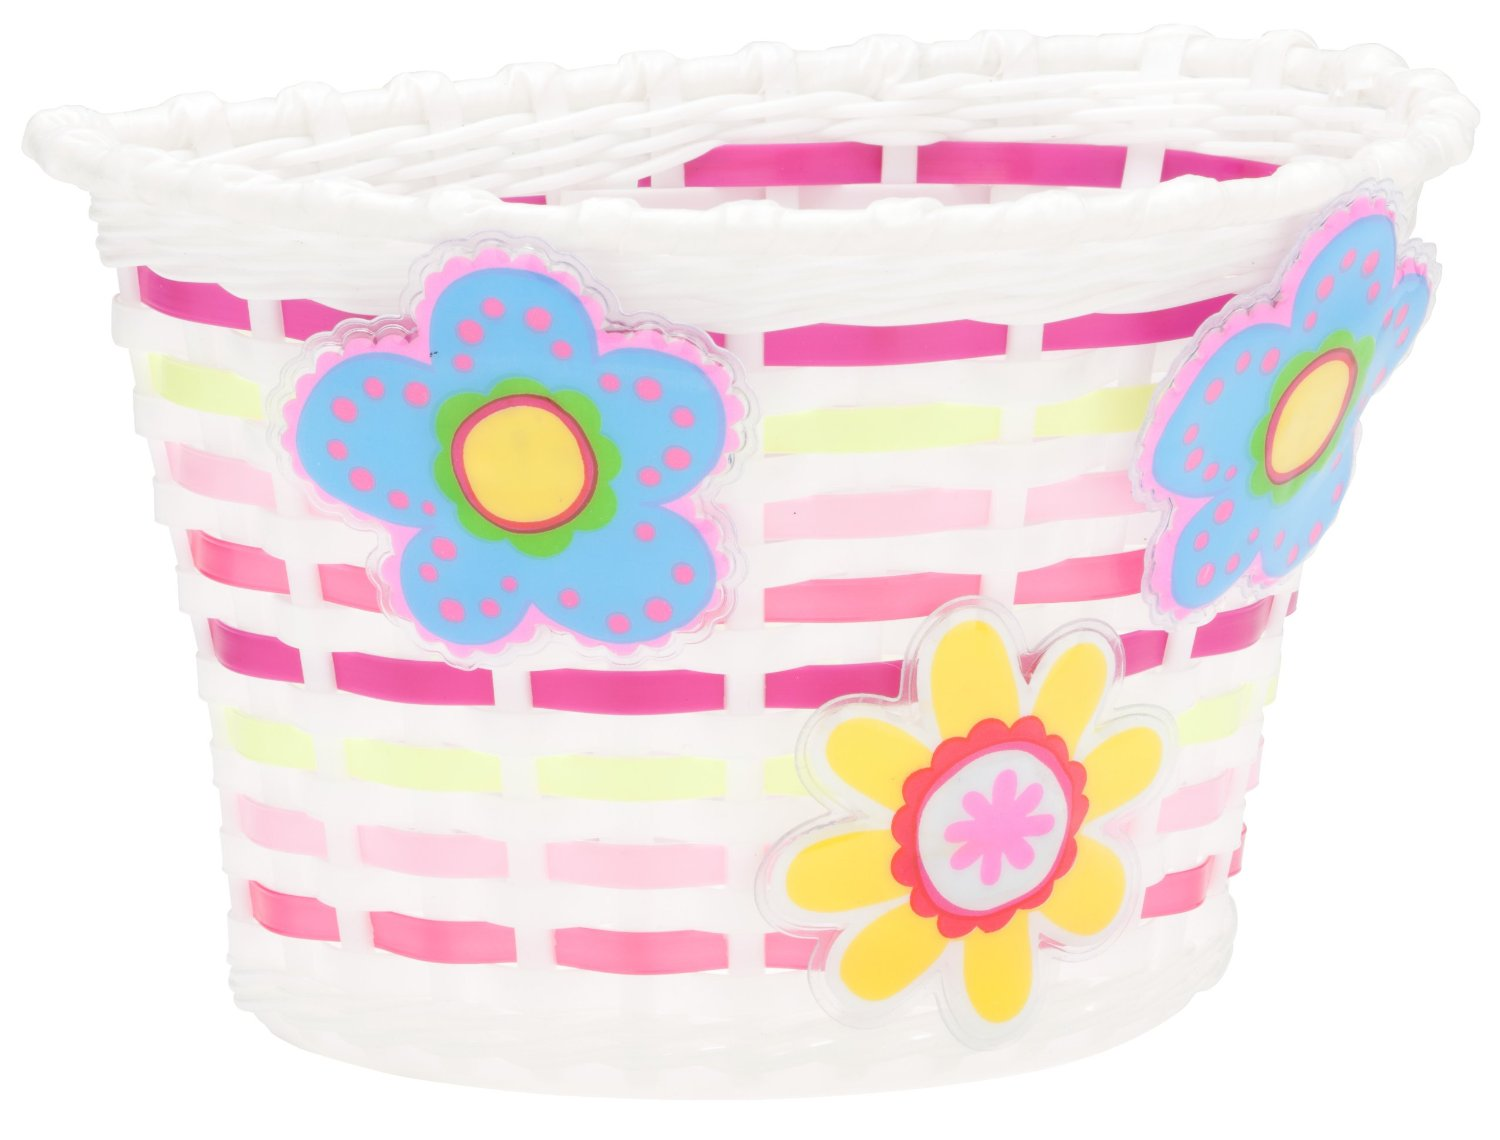 Review of Schwinn Girl's Bicycle Lighted Basket